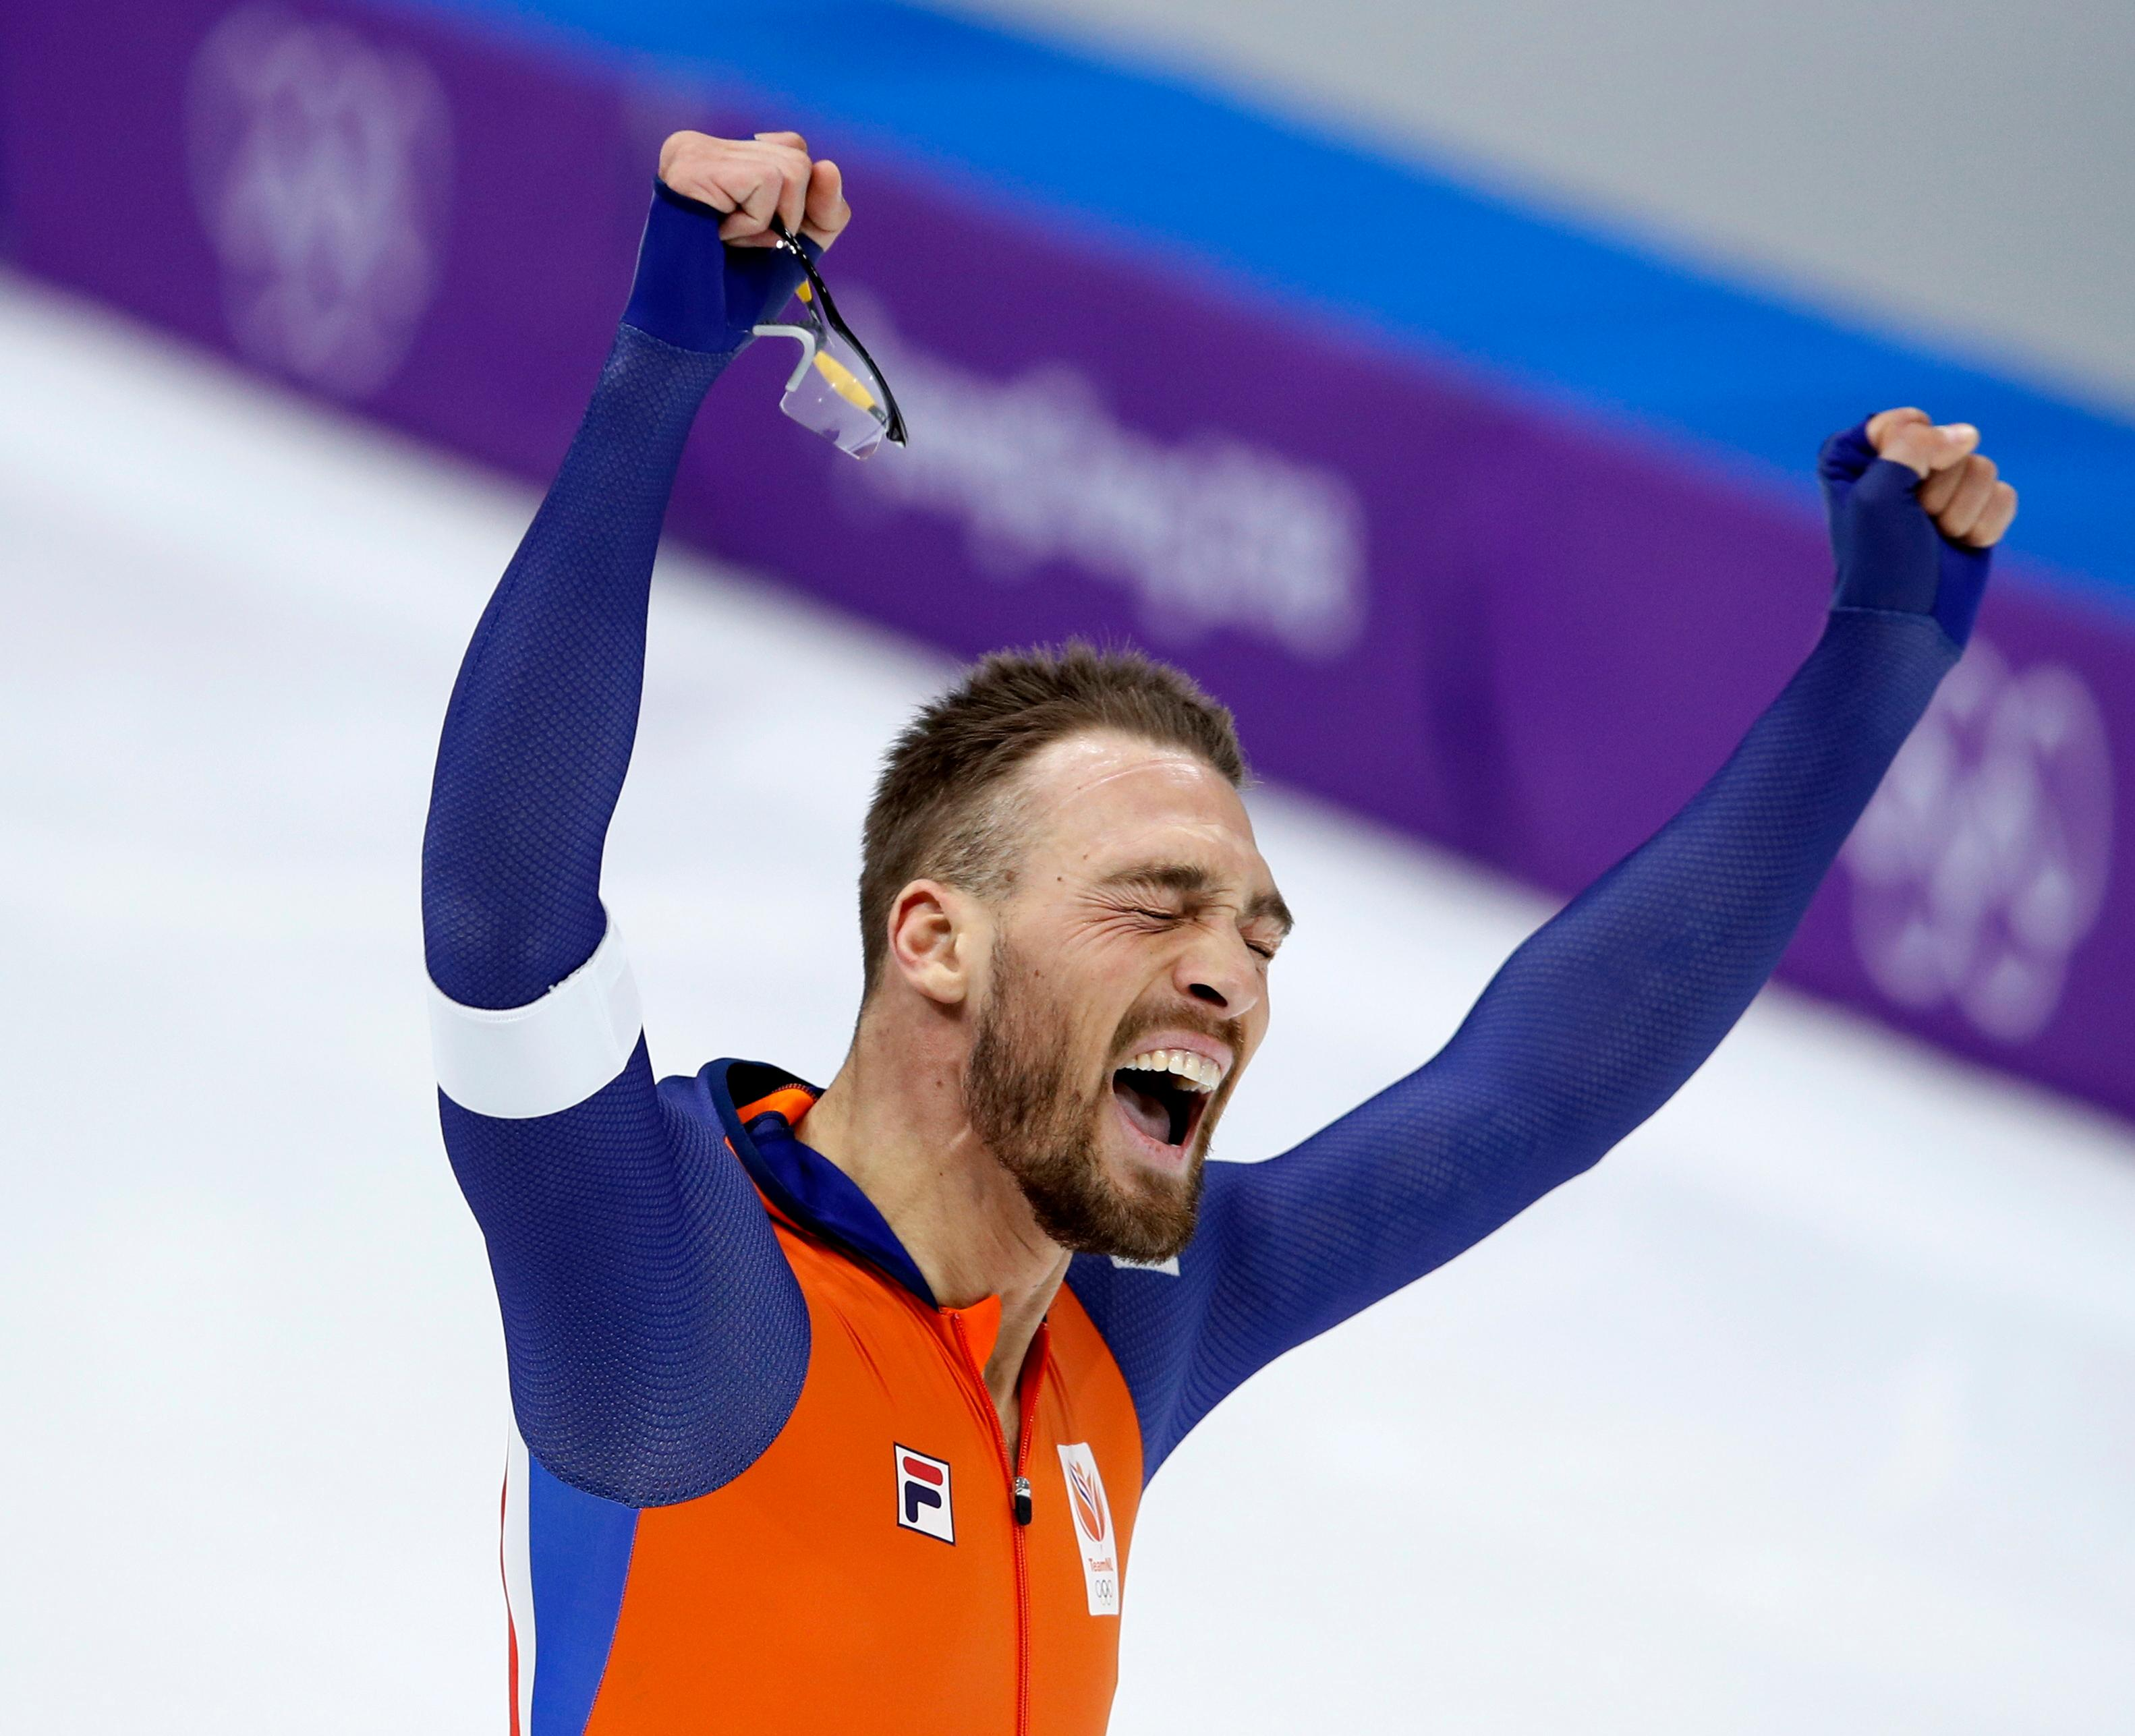 Gold medalist Kjeld Nuis of The Netherlands celebrates after the men's 1,000 meters speedskating race at the Gangneung Oval at the 2018 Winter Olympics in Gangneung, South Korea, Friday, Feb. 23, 2018. (AP Photo/Vadim Ghirda)